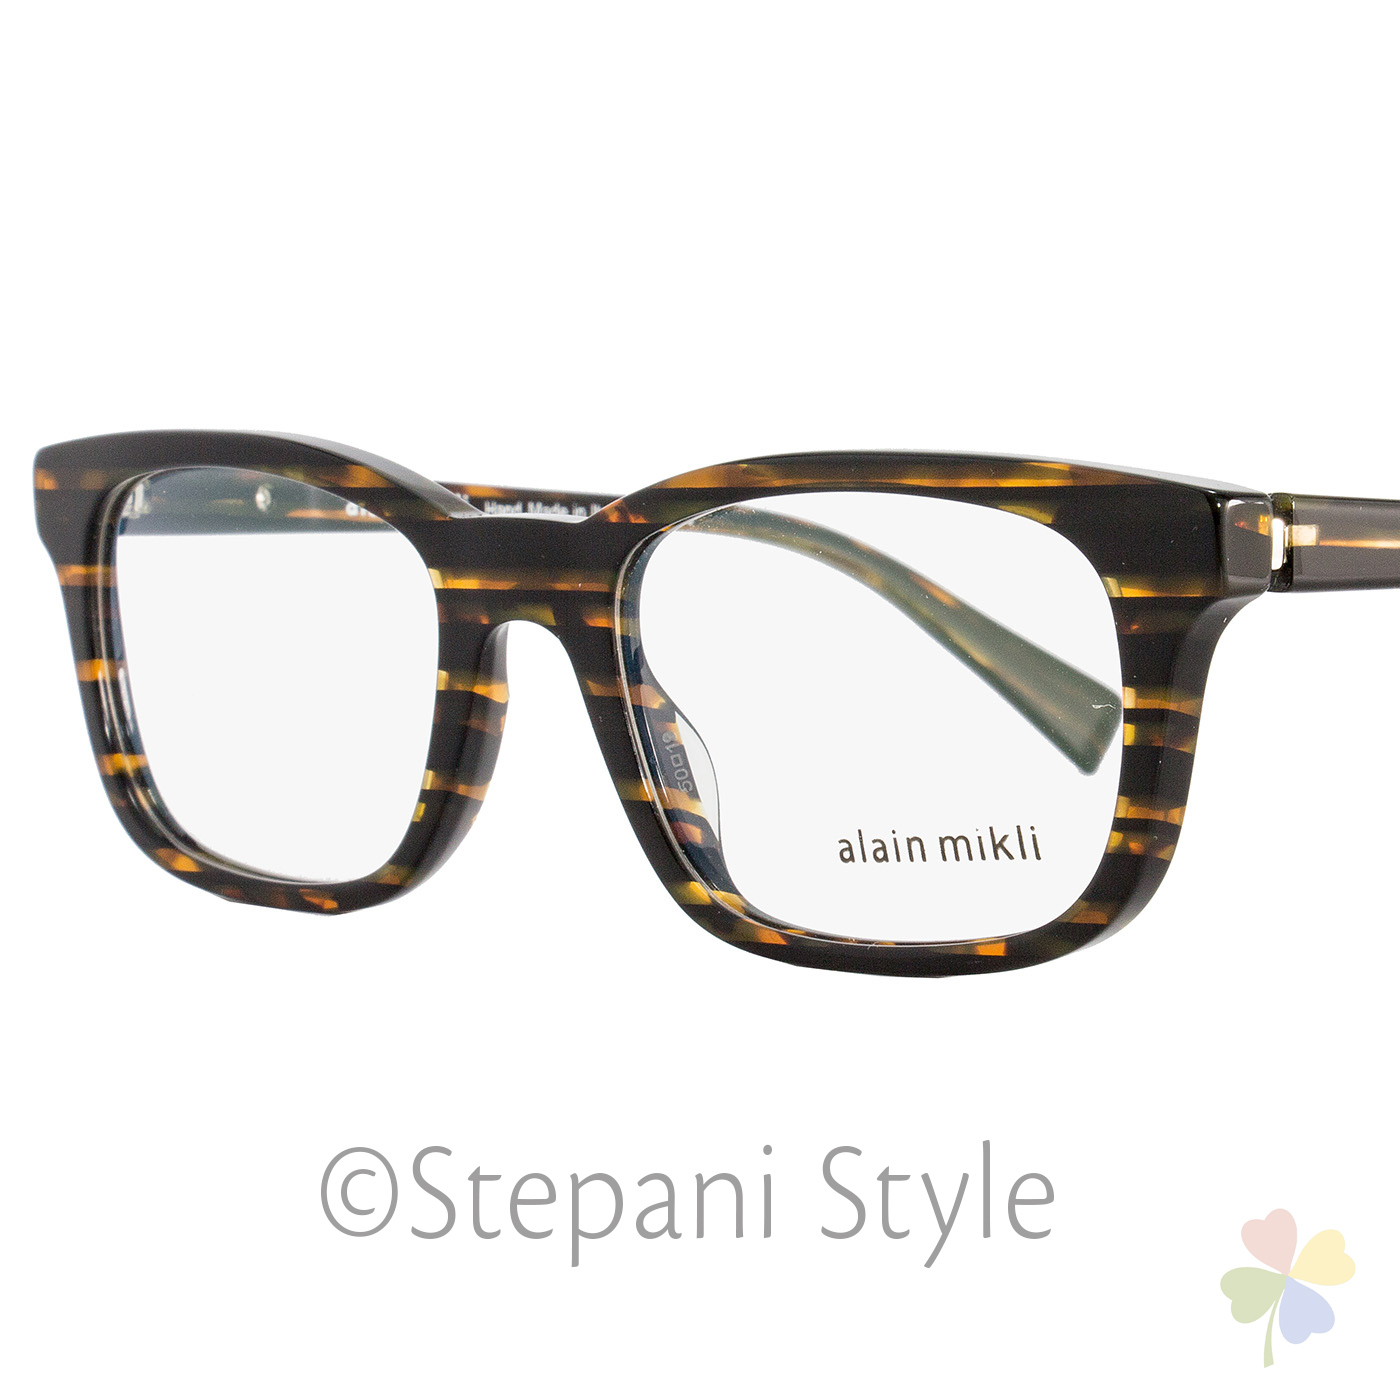 3e06d4e7c7 Image is loading Alain-Mikli-Rectangular-Eyeglasses-A03039-2891-Size-50mm-